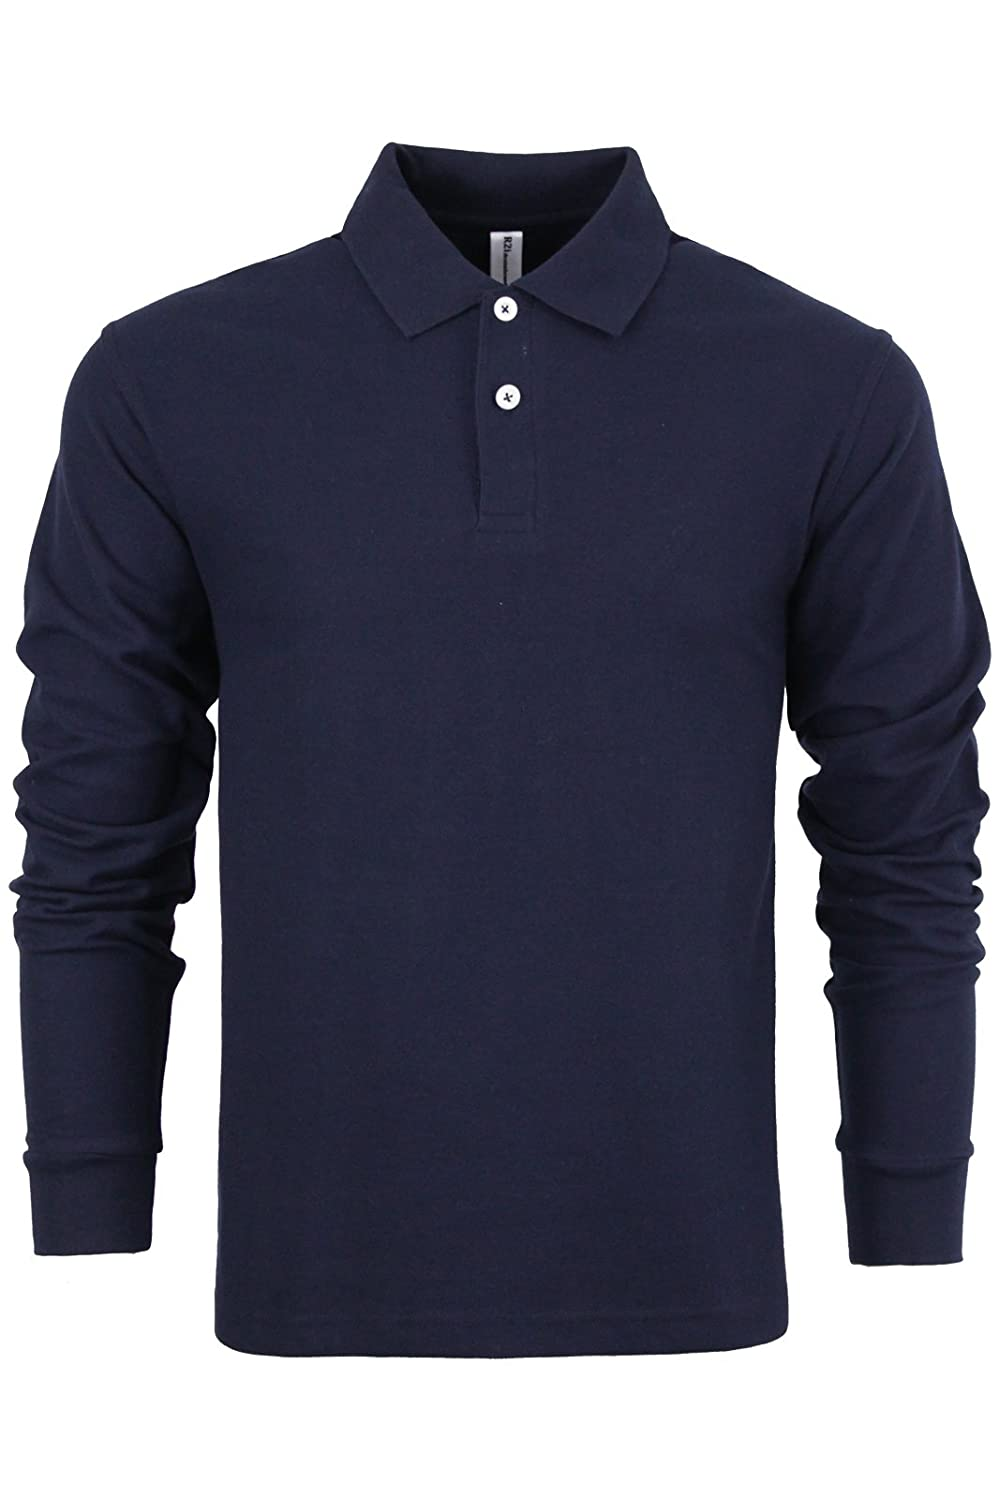 R2i Mens Polo T Shirt Knitted Top Plain Long Sleeved Collared Casual S-XXL New